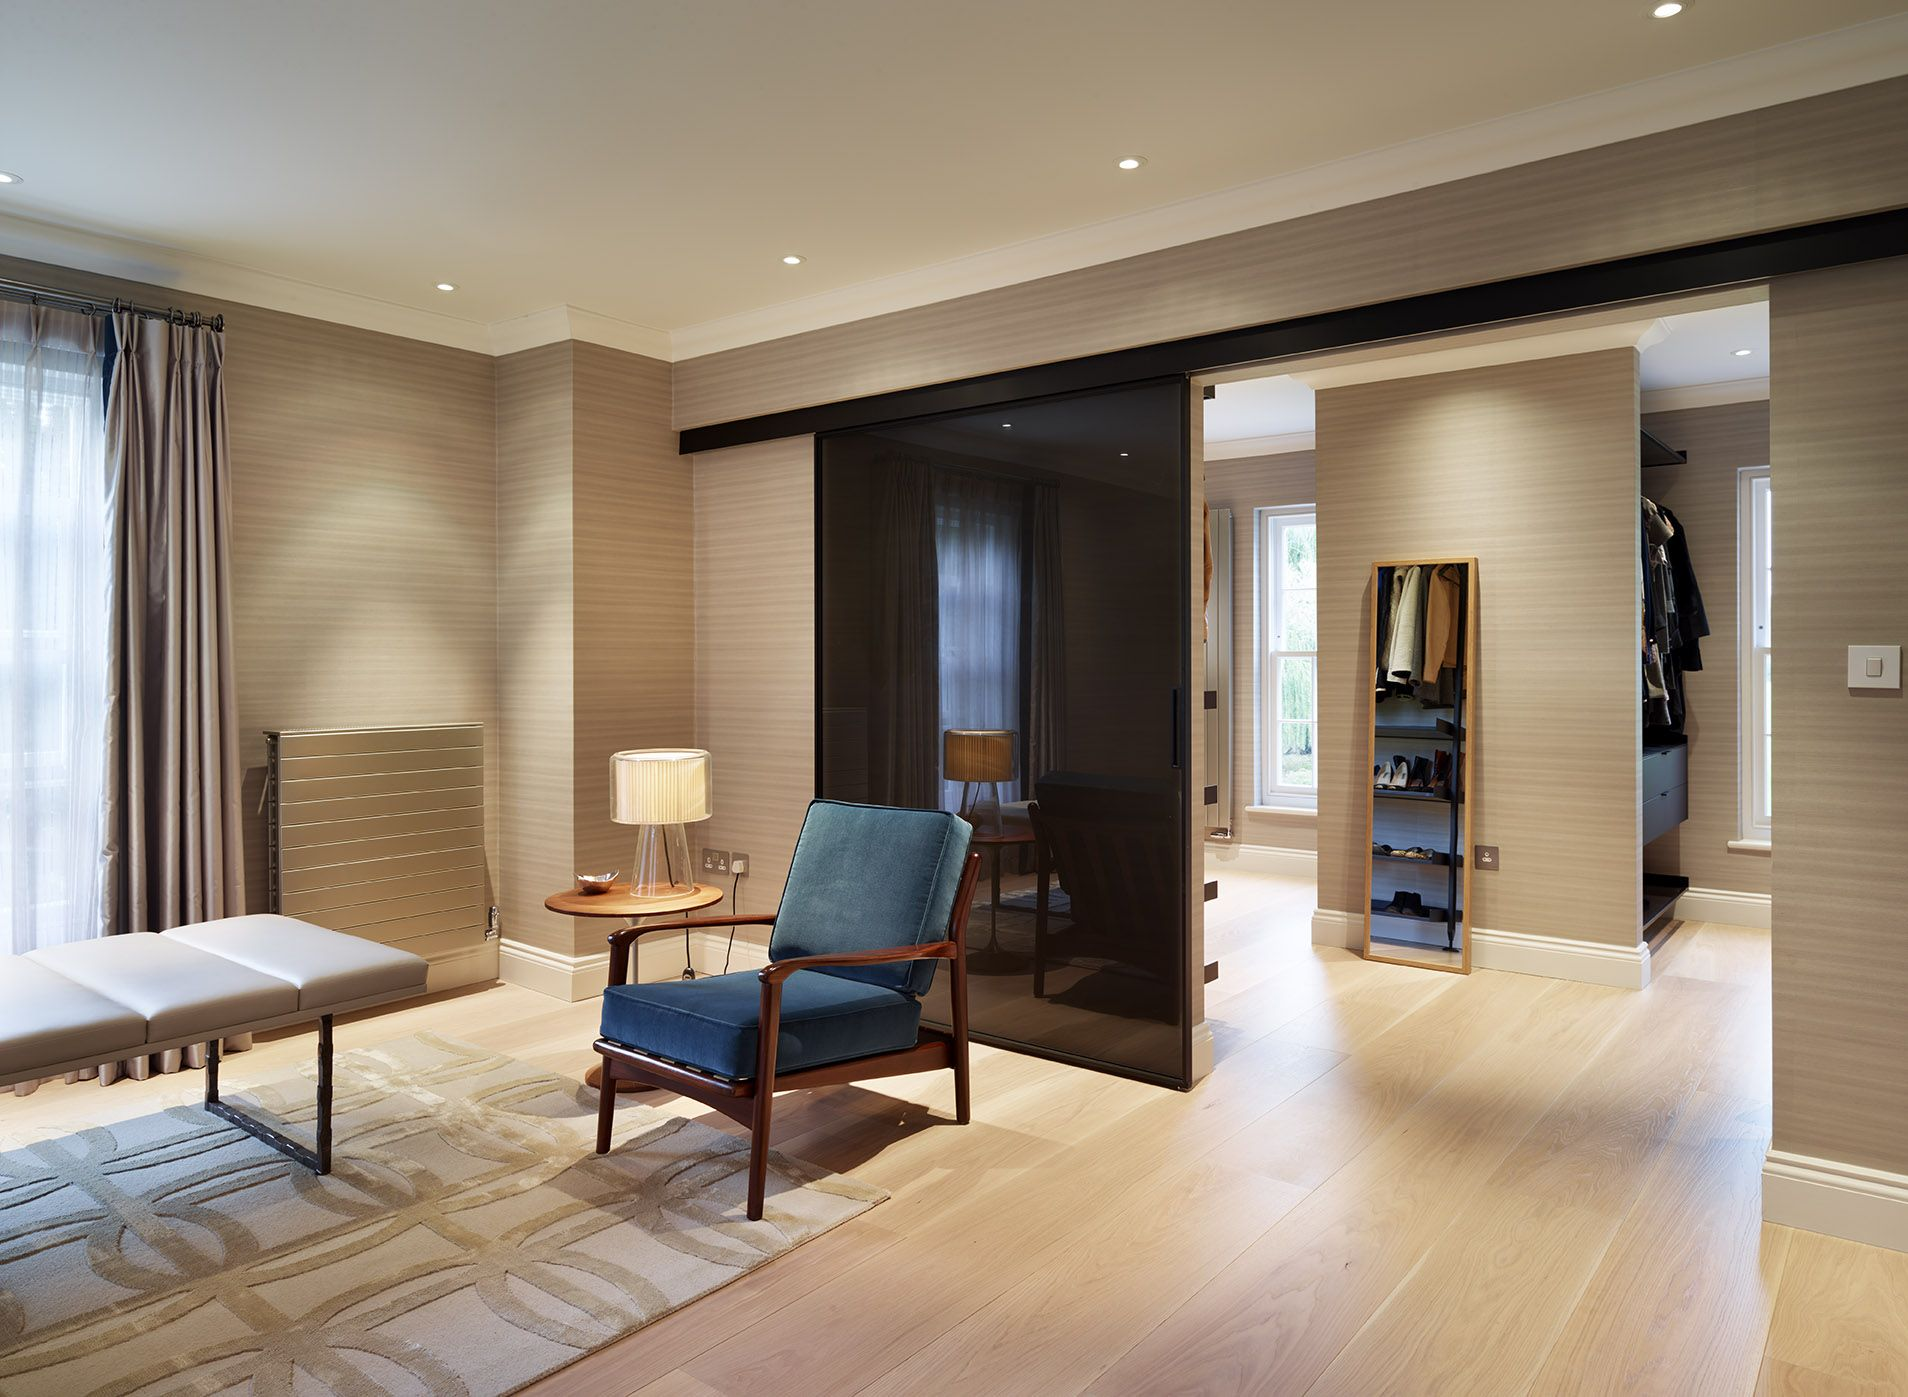 Case study rimadesio doors designed and installed in a for Master bedroom dressing room ideas